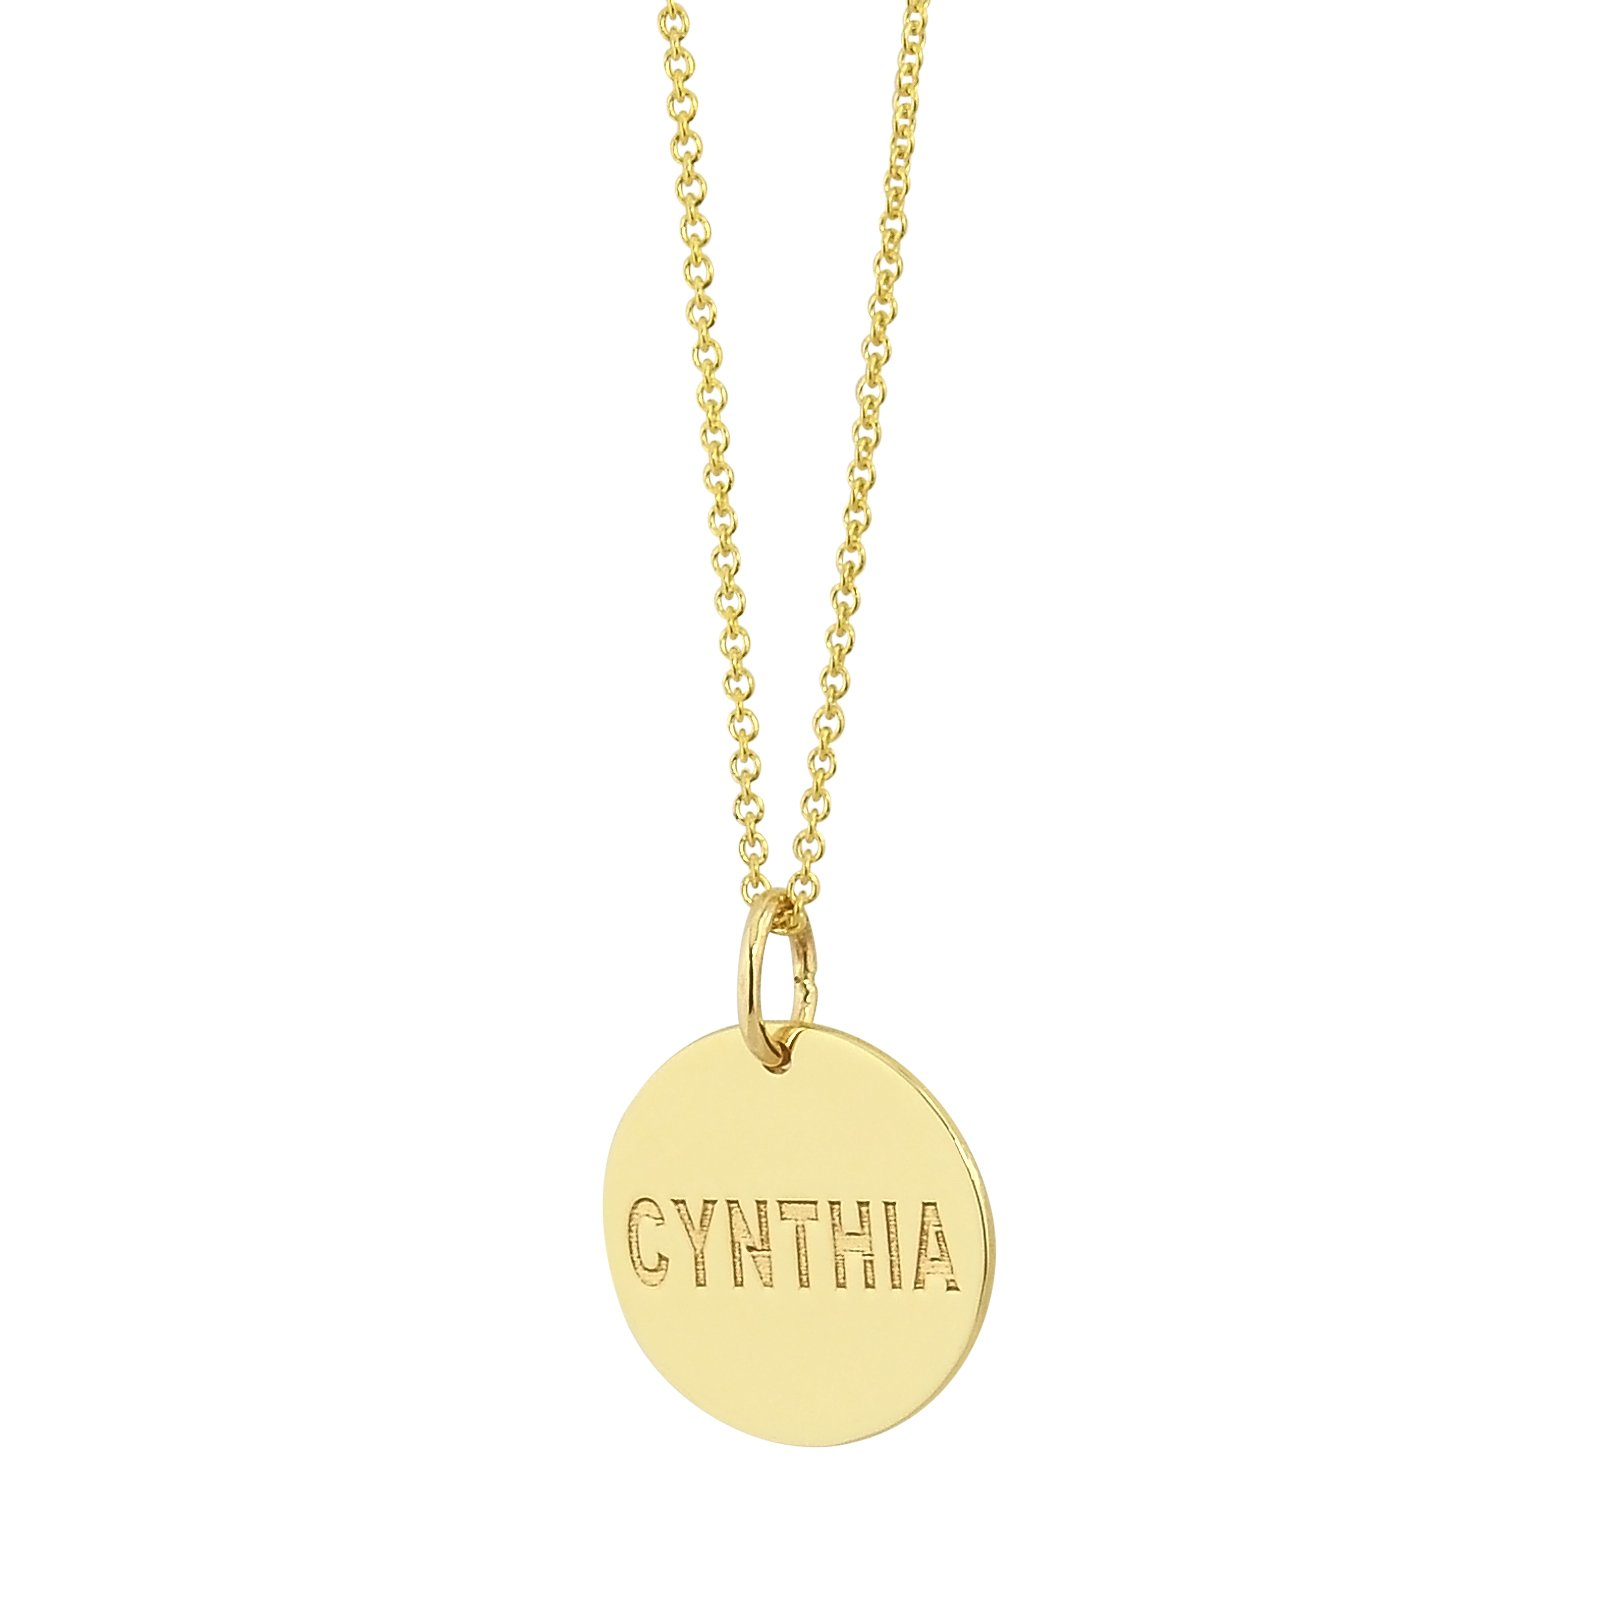 Tiny 1/2 Inch Round Disc Charm Pendant Solid 14K Gold Personalized Deep Laser Engraved Any Name GC04 (16)